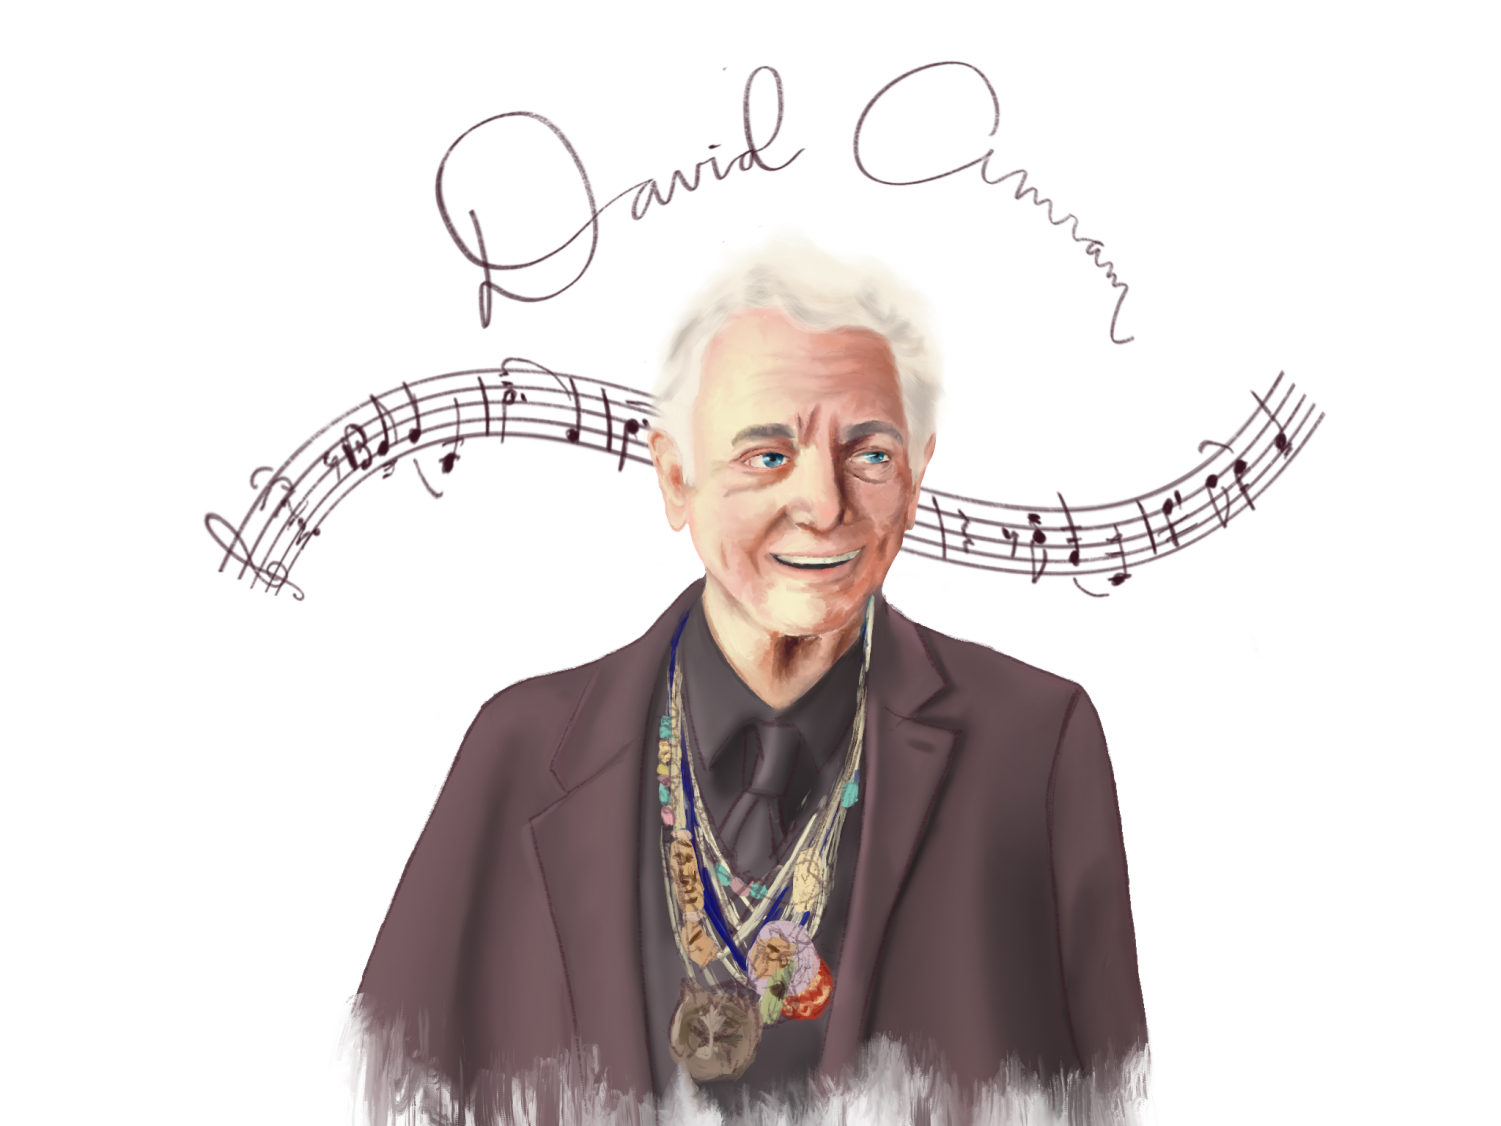 Composer David Amram, who will be visiting the upper school as this year's artist in residence. His visit begins tomorrow and will last throughout the week, and he will host a number of workshops, lectures and talks for students to learn more about music and art.